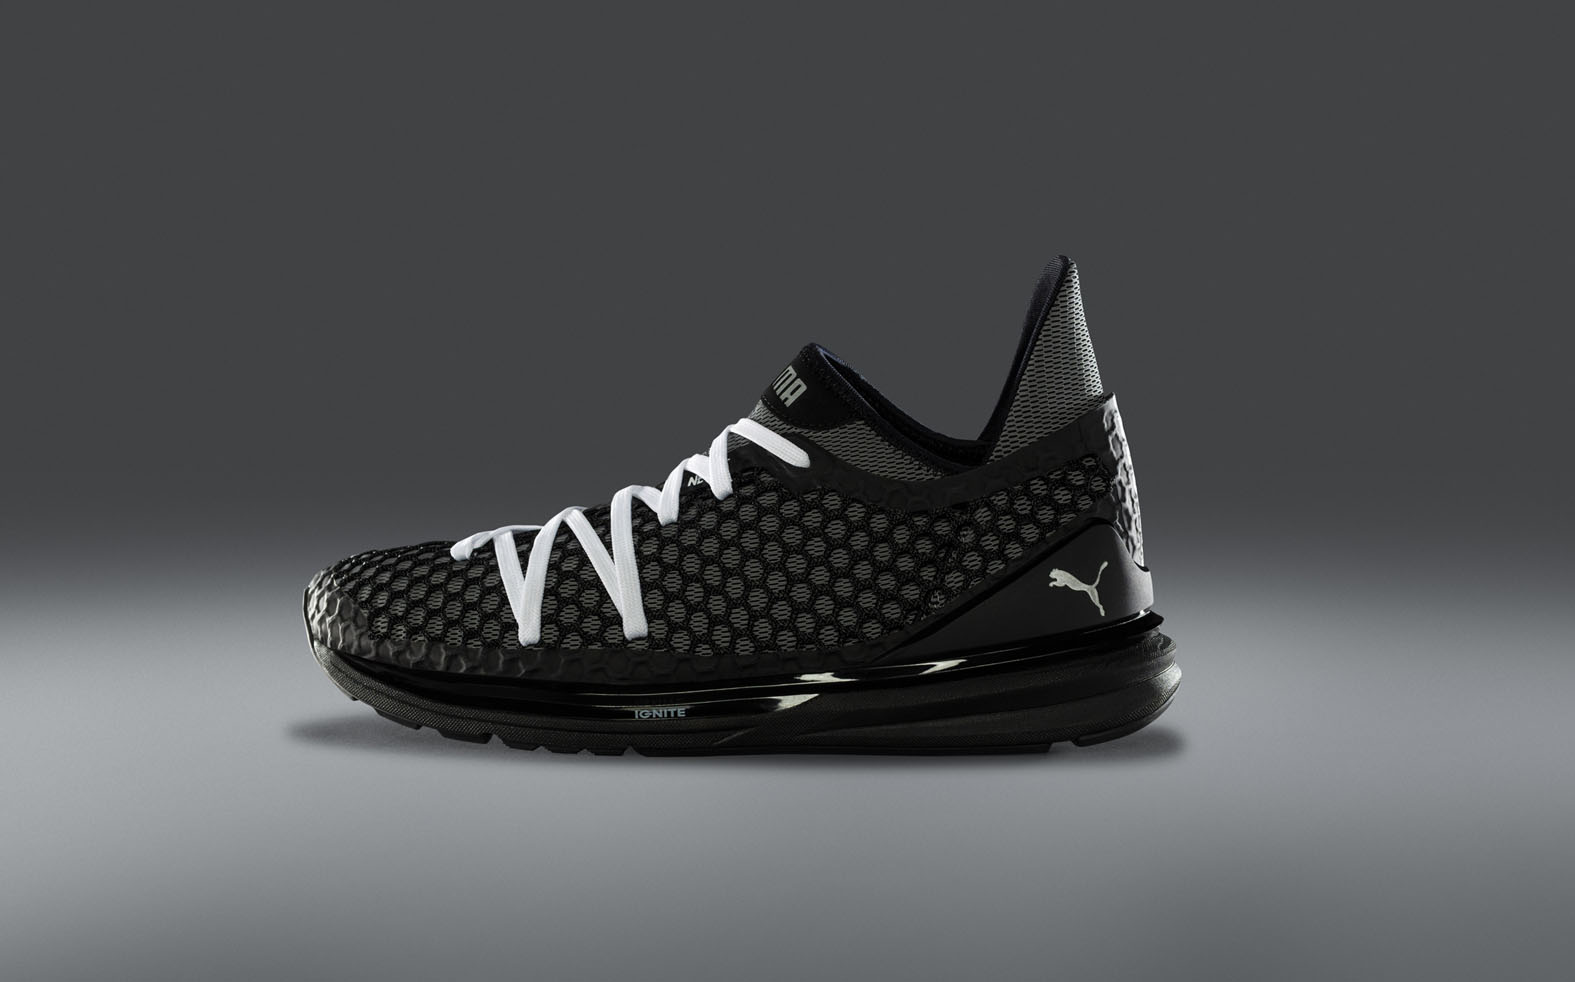 3d50fed9f From the track, to the gym, to the street, NETFIT Technology will be  featured on several sports and performance shoes. The innovation and  performance teams ...